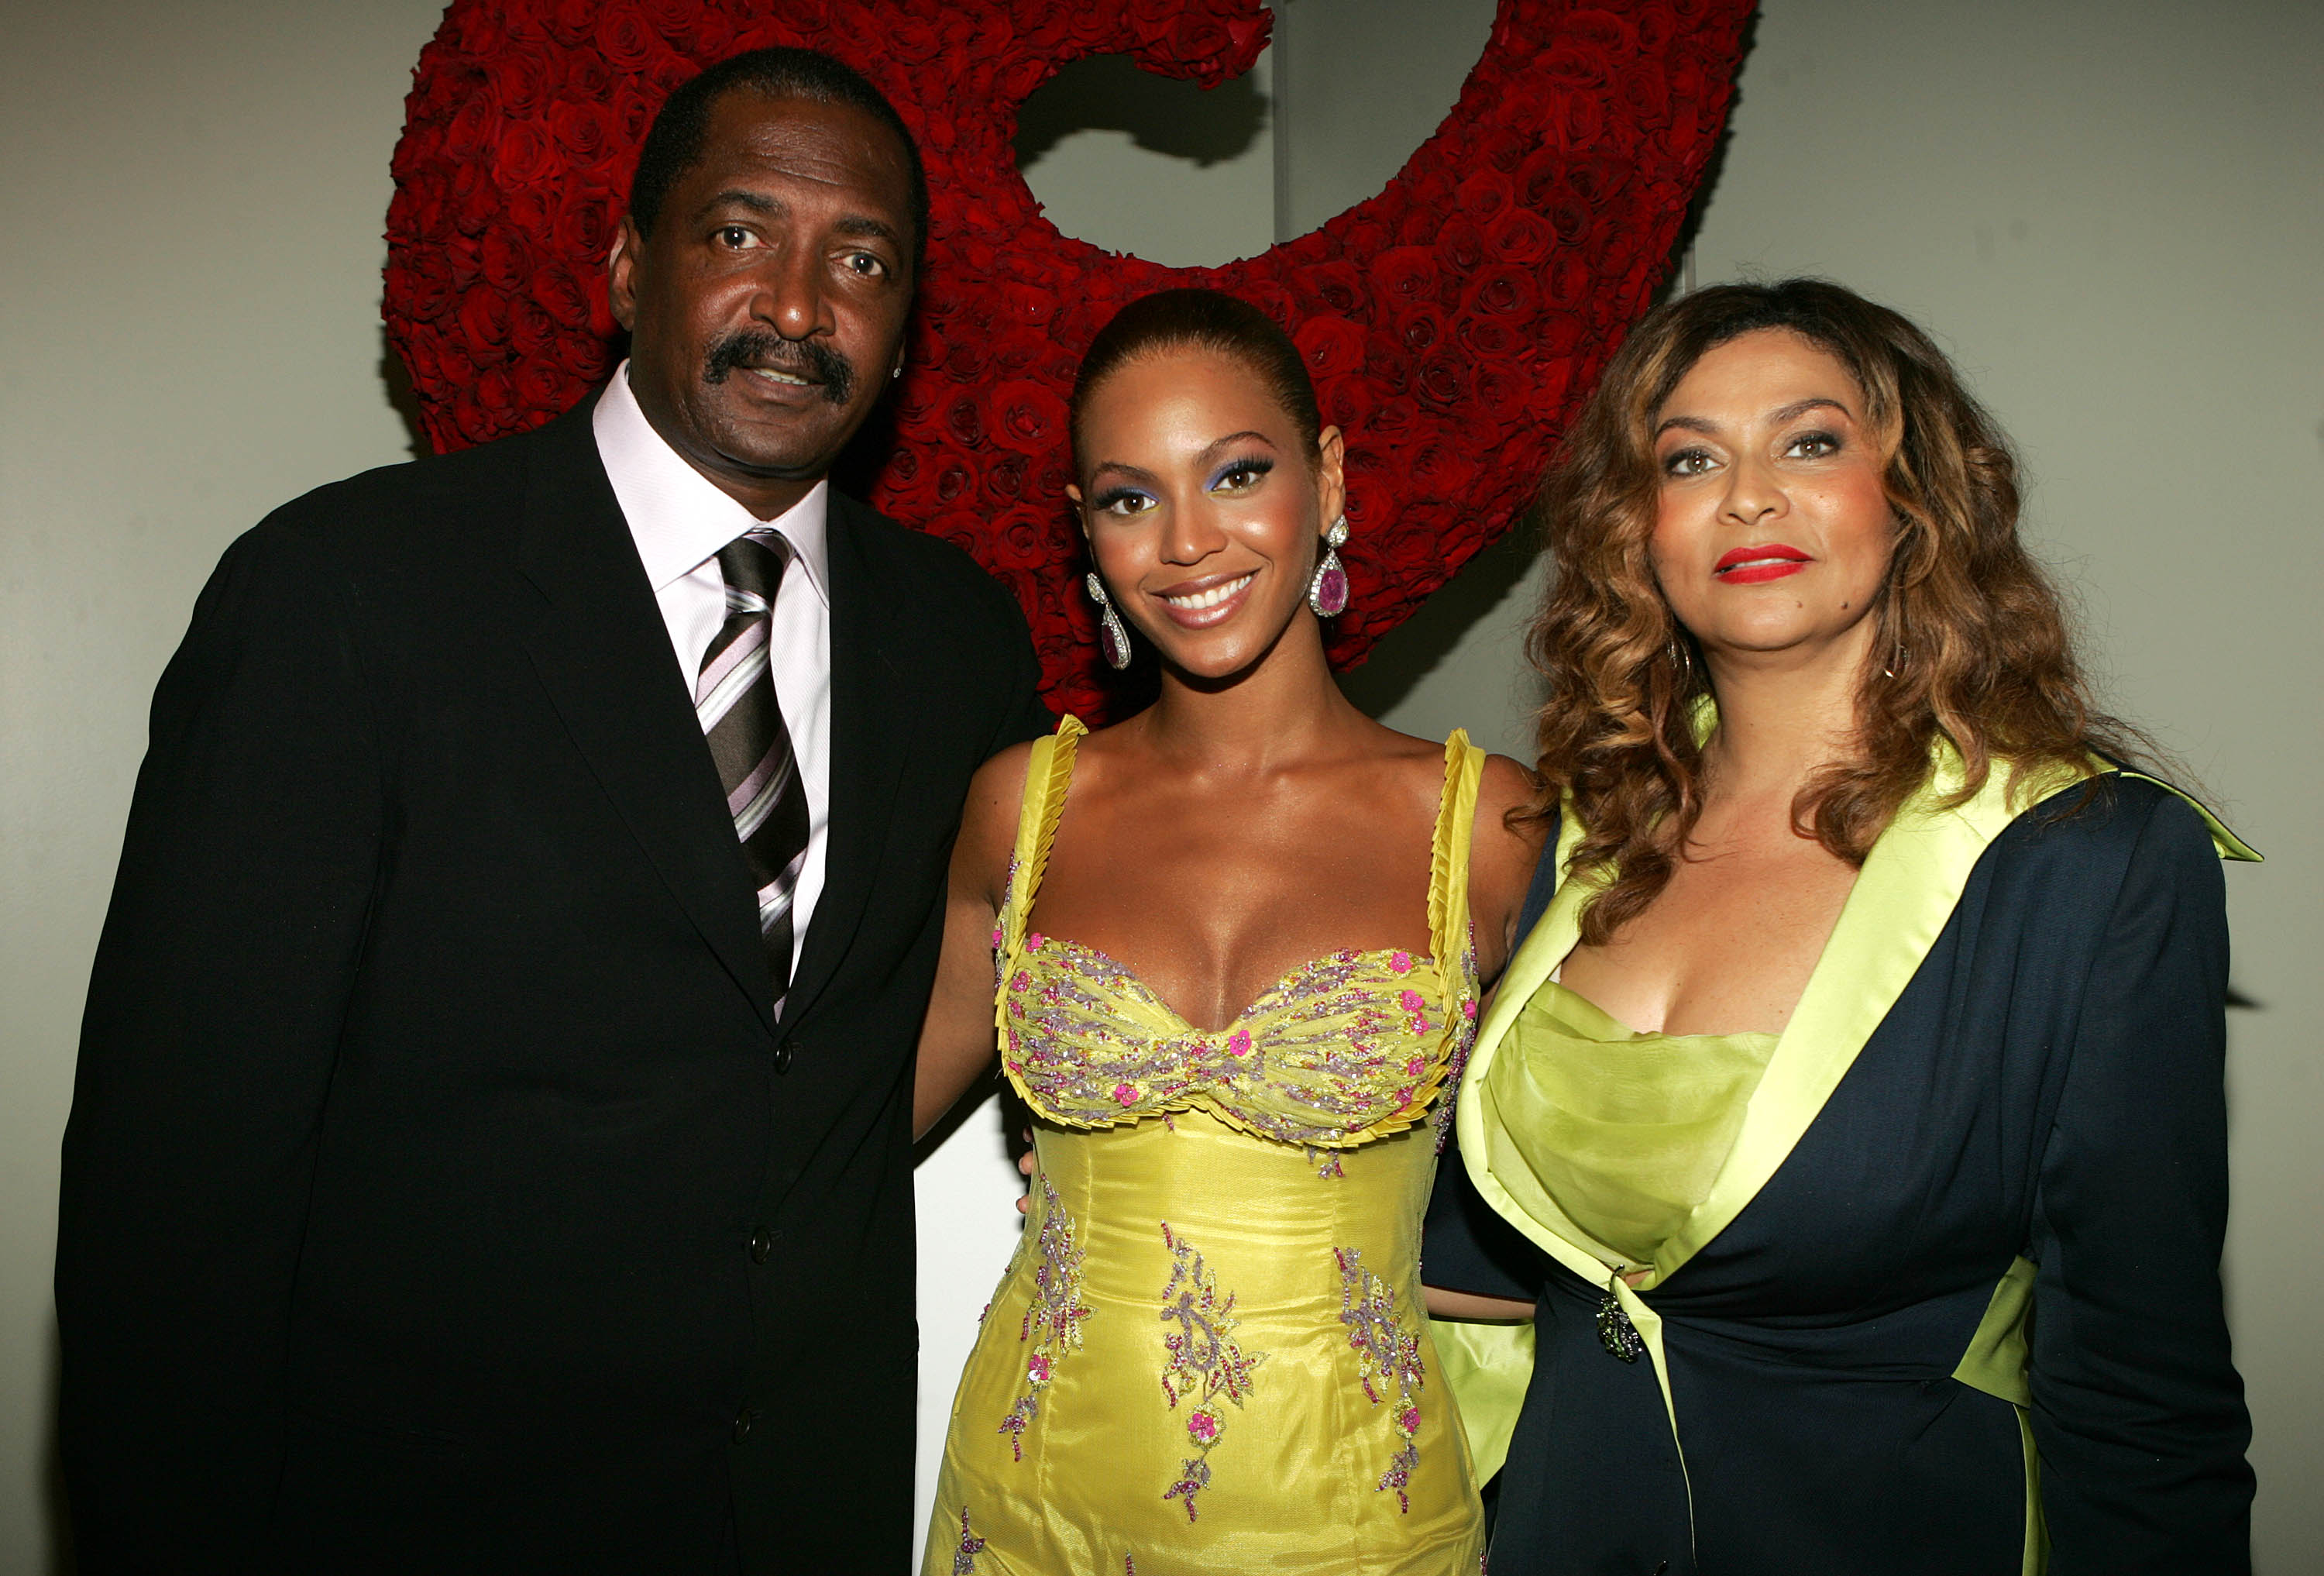 Beyonce's Father Says She Wouldn't Be as Popular With Darker Skin